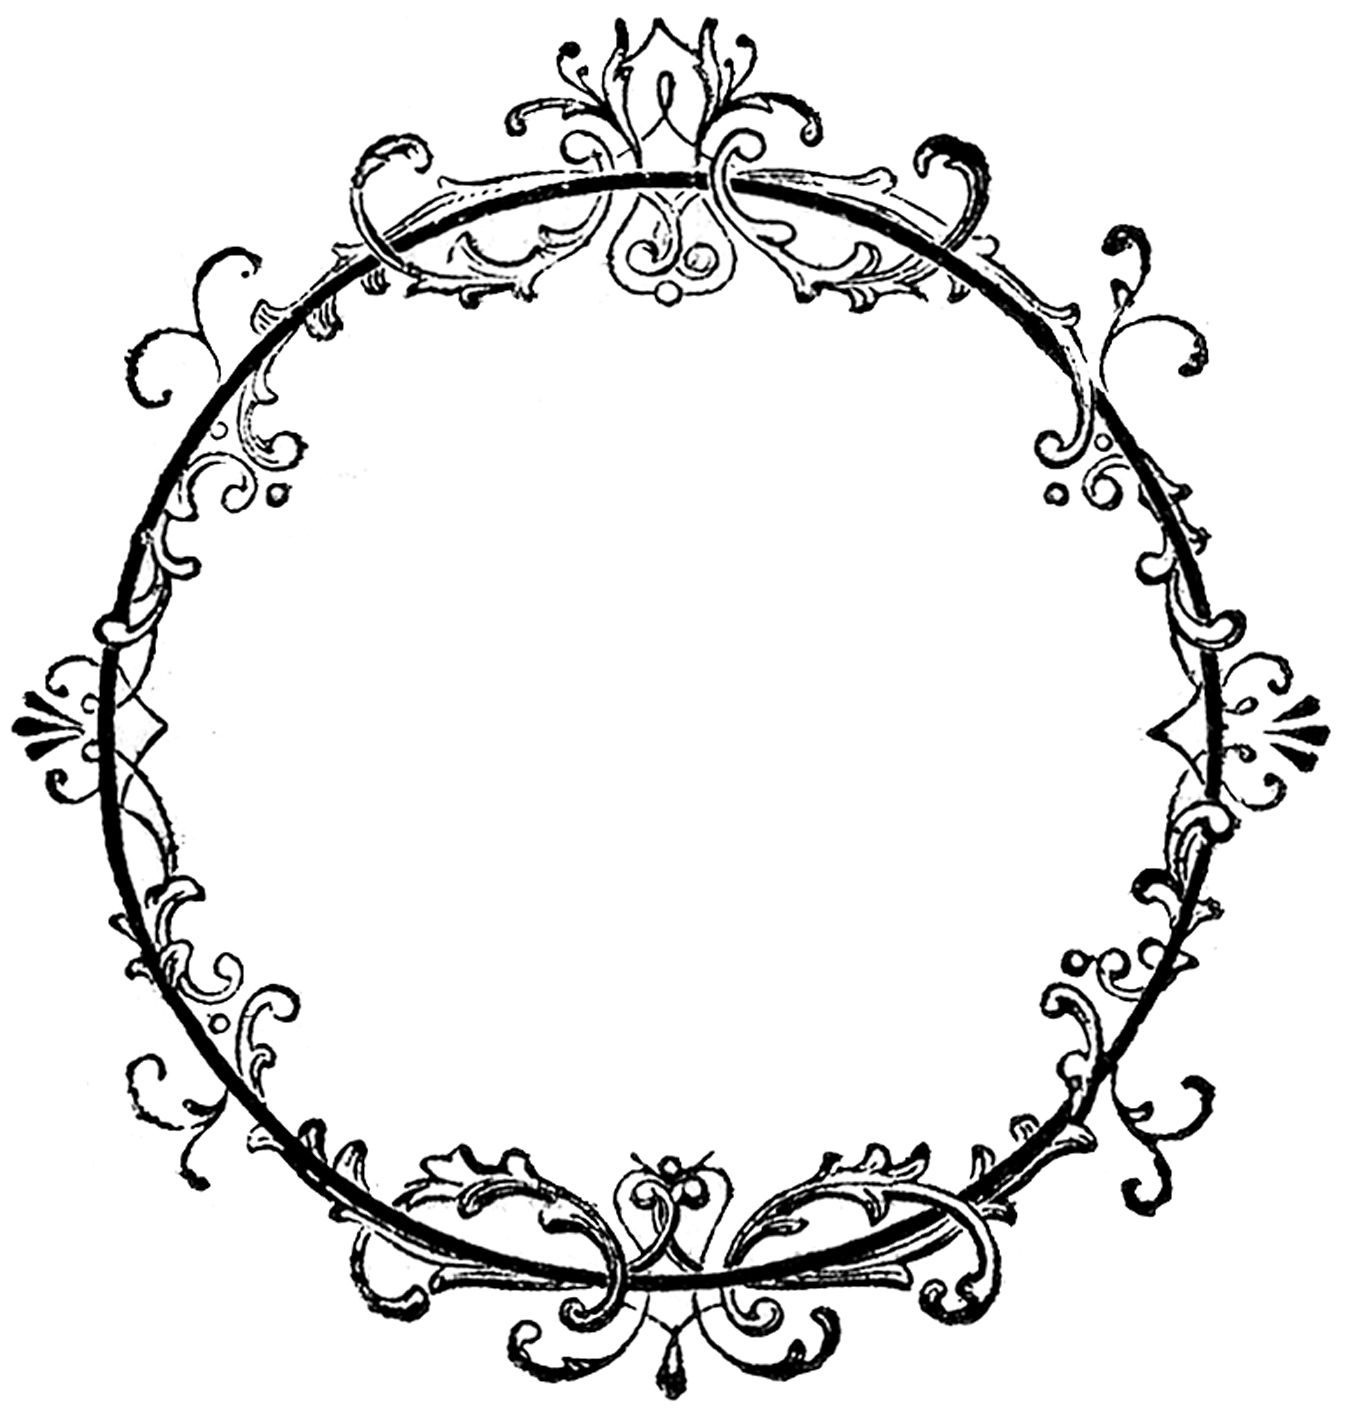 vintage frame tattoo designs. Vintage Clip Art - Old Ink Label Lacey Graphic Frame The Graphics Fairy Tattoo Designs